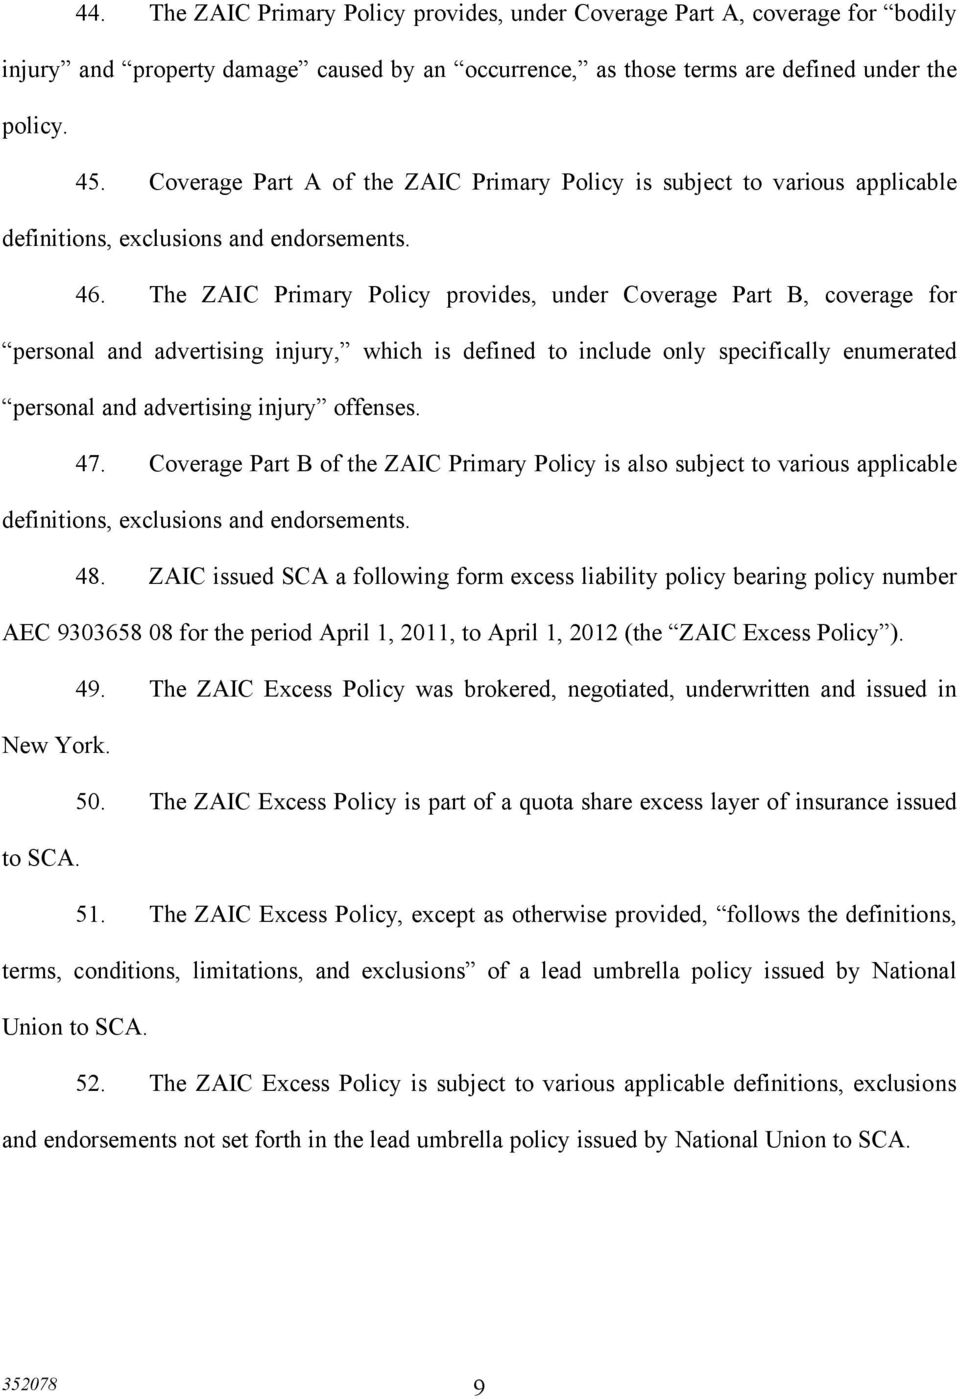 The ZAIC Primary Policy provides, under Coverage Part B, coverage for personal and advertising injury, which is defined to include only specifically enumerated personal and advertising injury